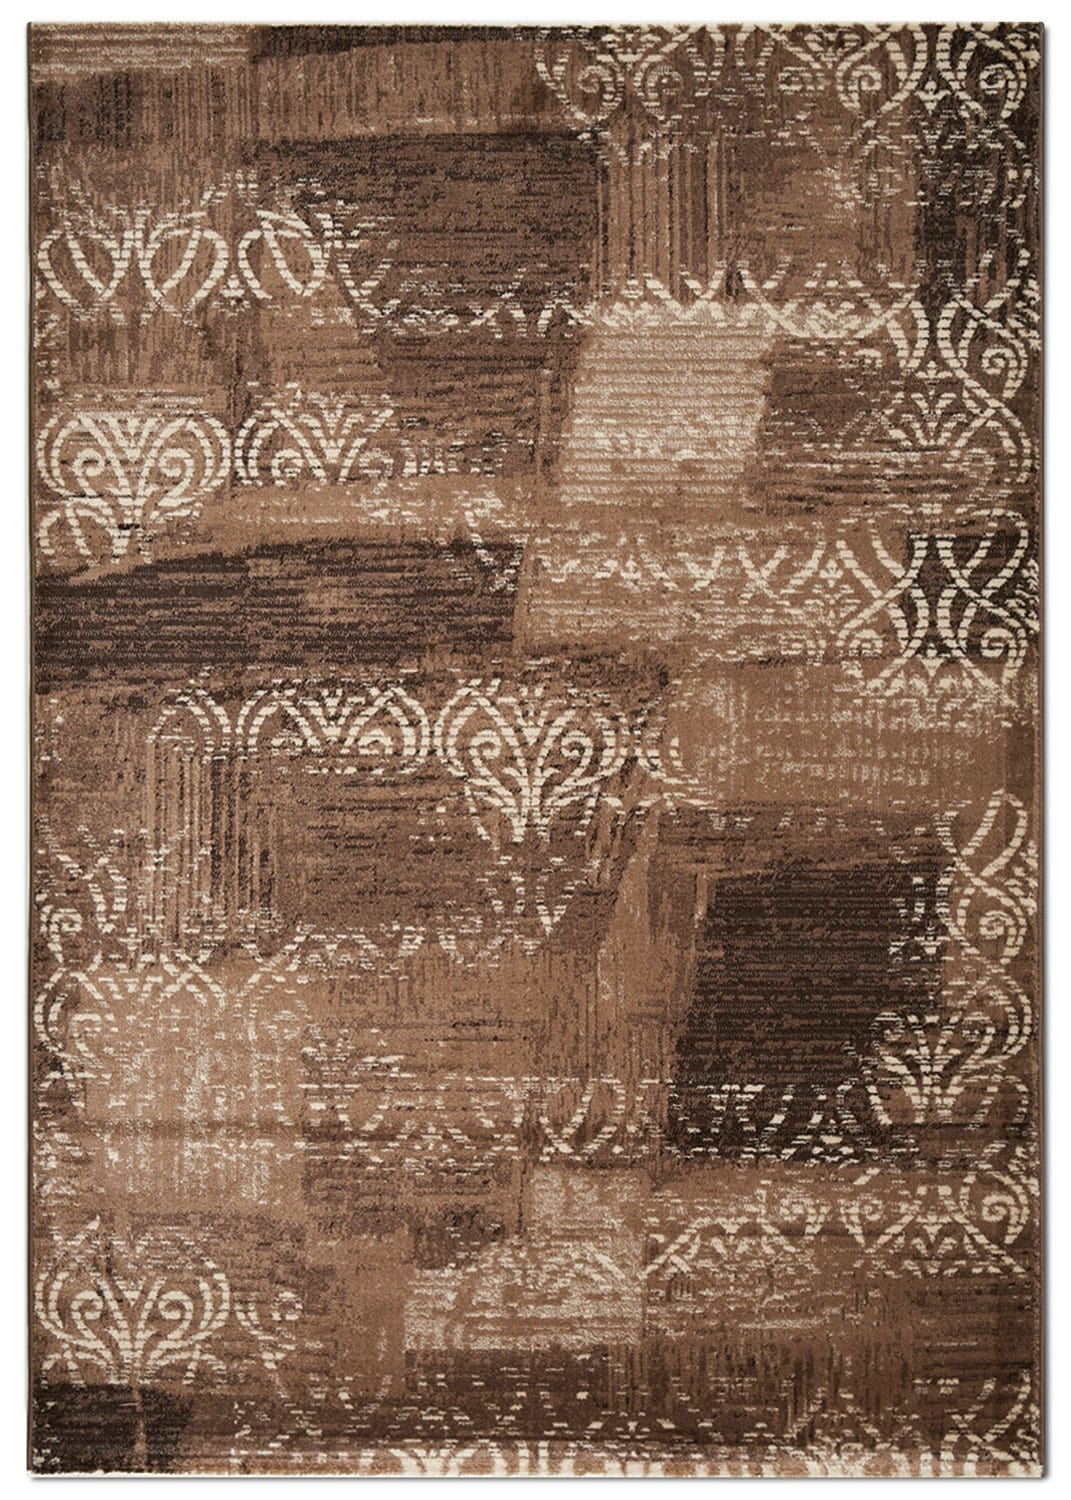 Rugs - Empire 5' x 8' Area Rug - Brown